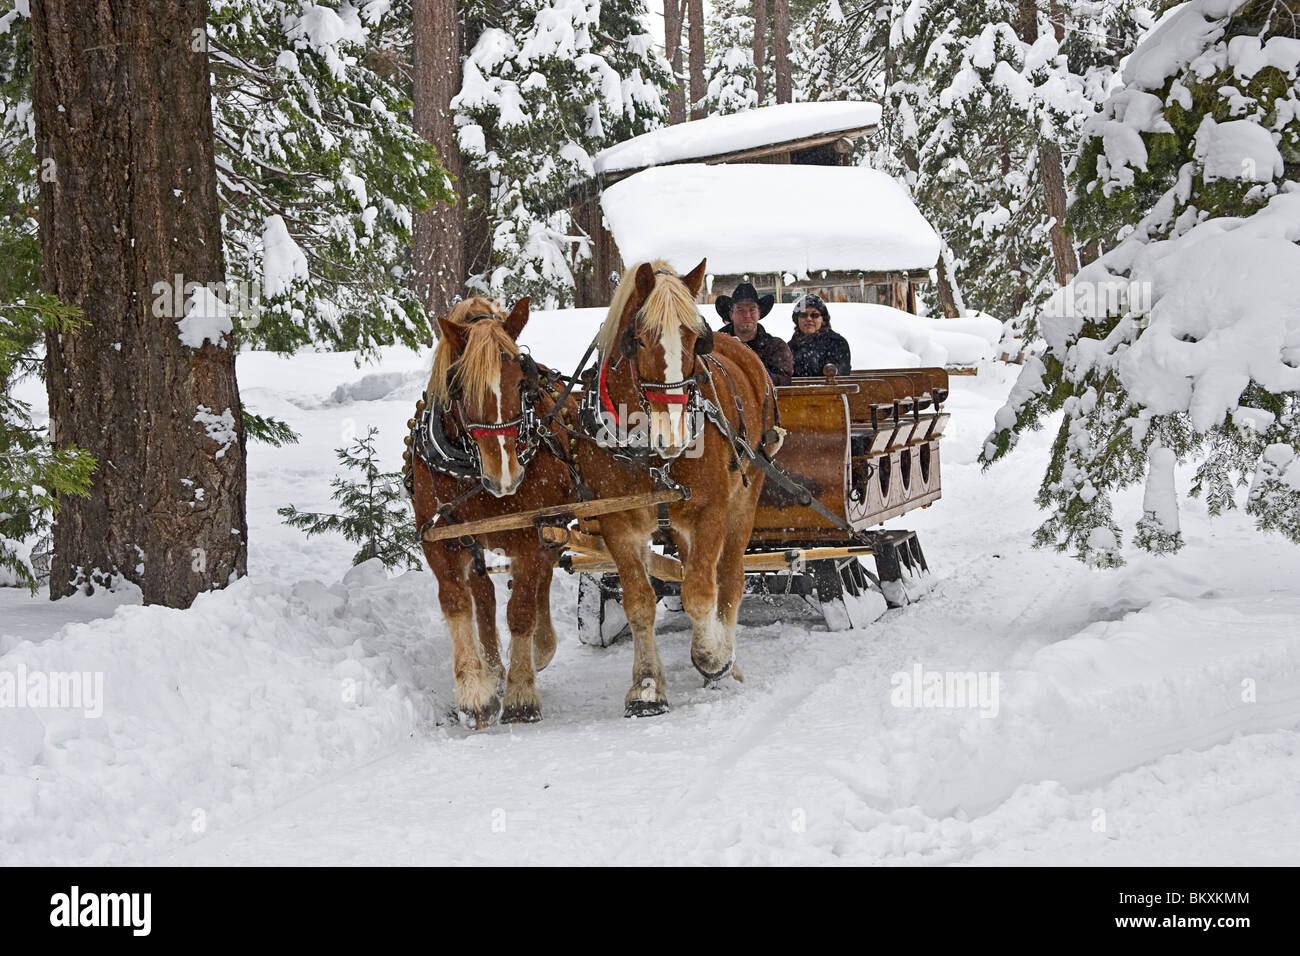 Sleigh ride through a pine tree forest, South Lake Tahoe, USA. - Stock Image